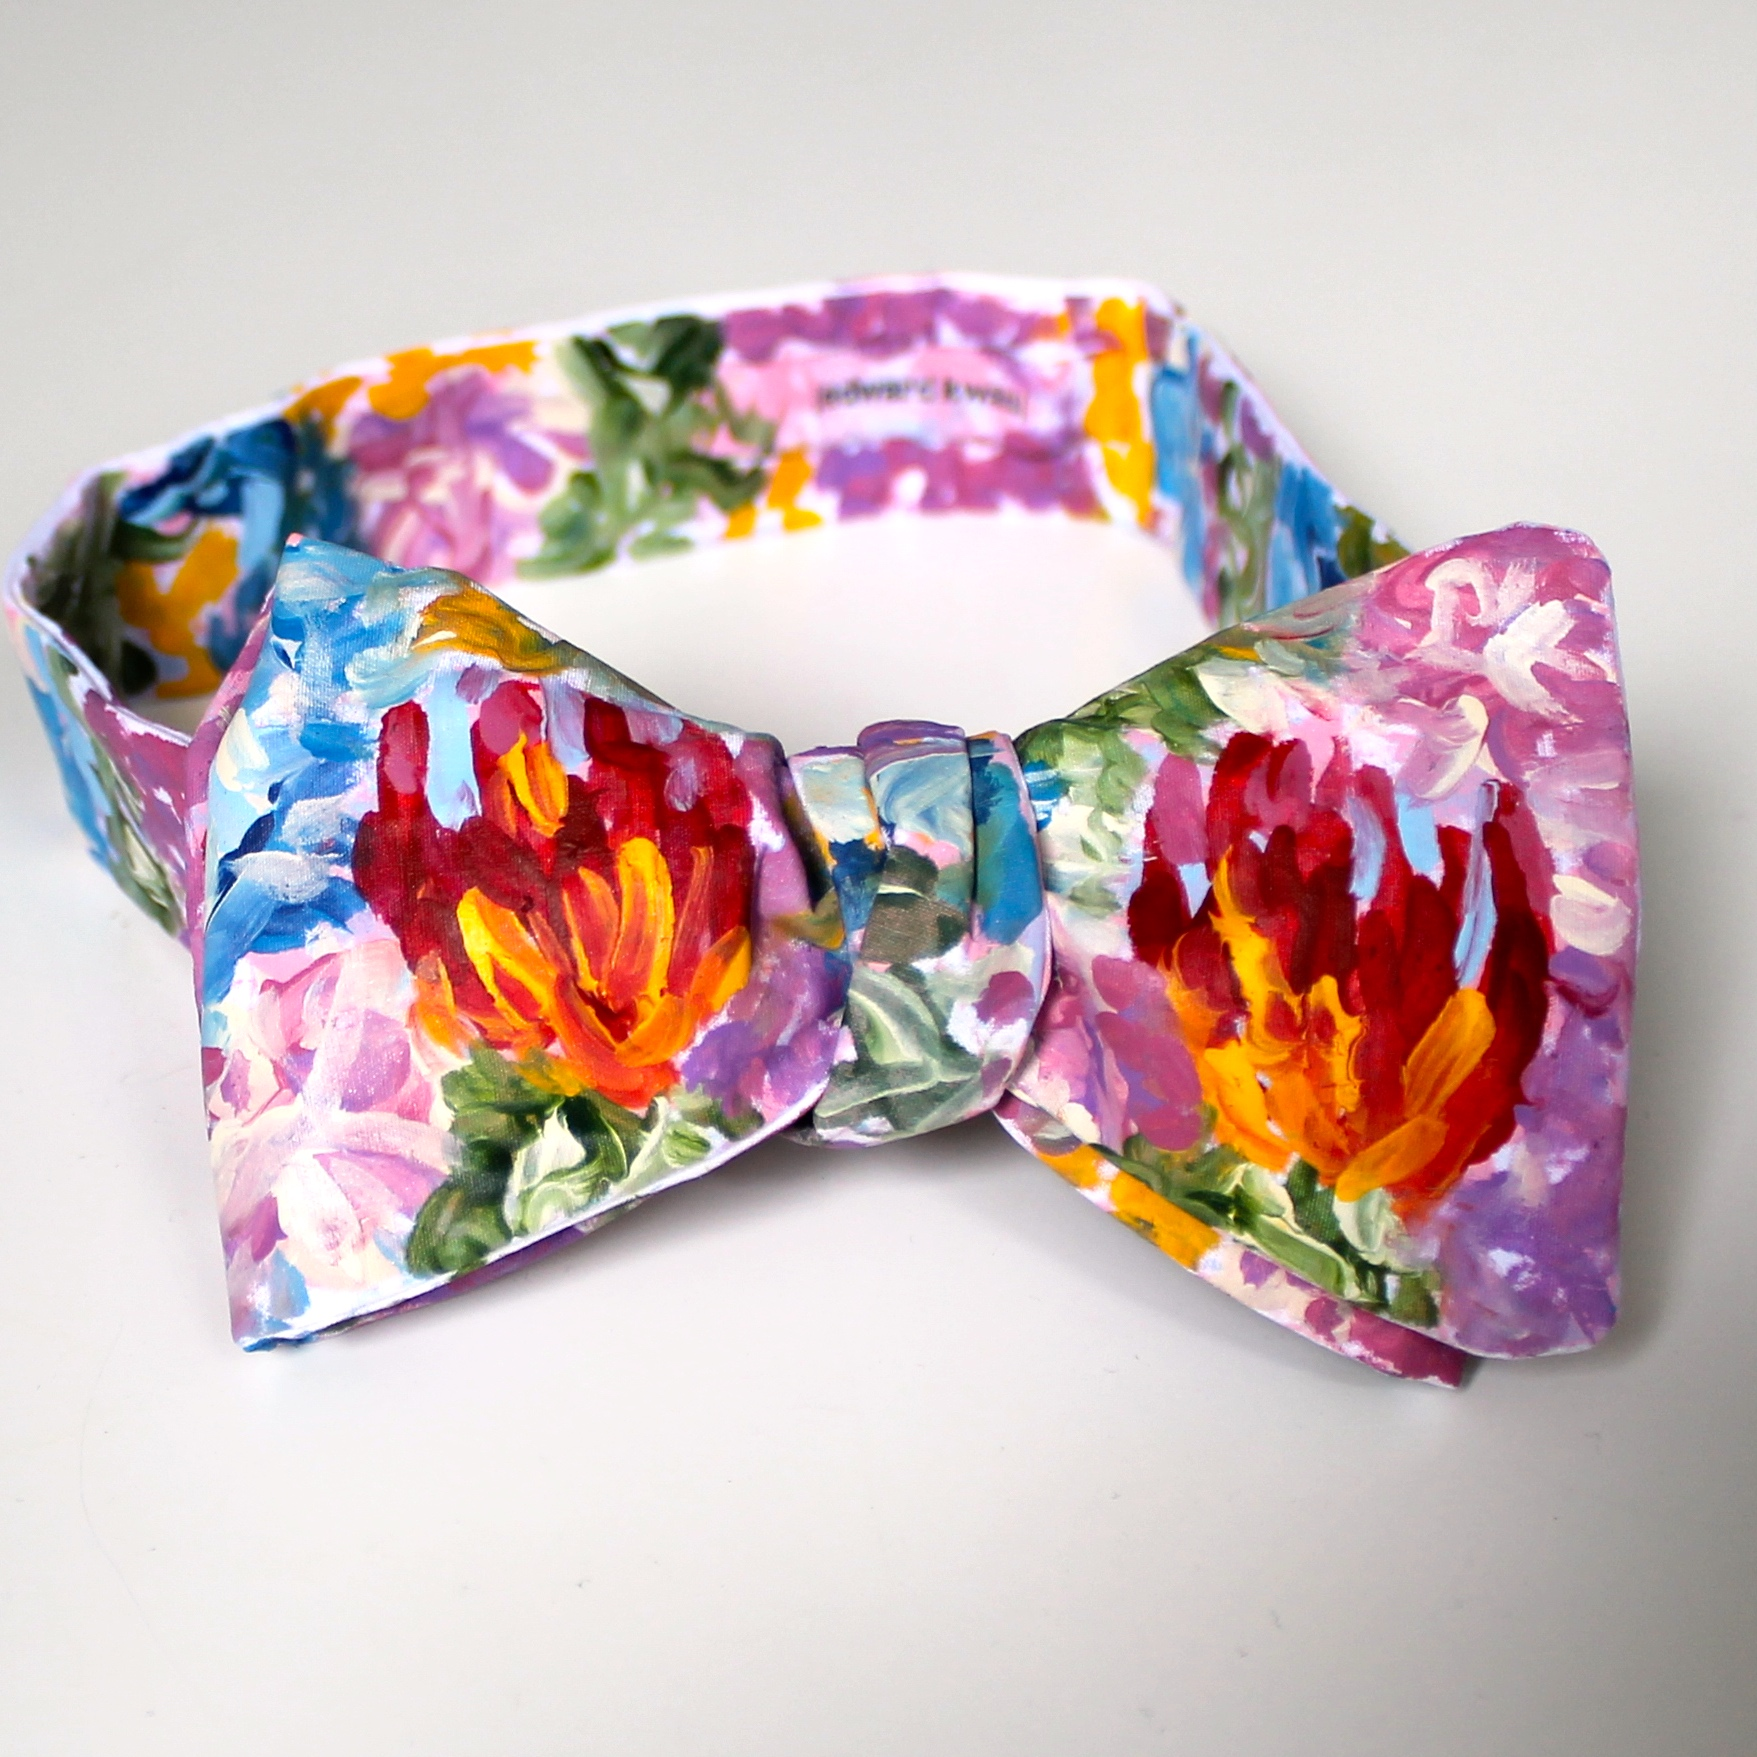 edward kwan hand painted bow ties melbourne australia.JPG